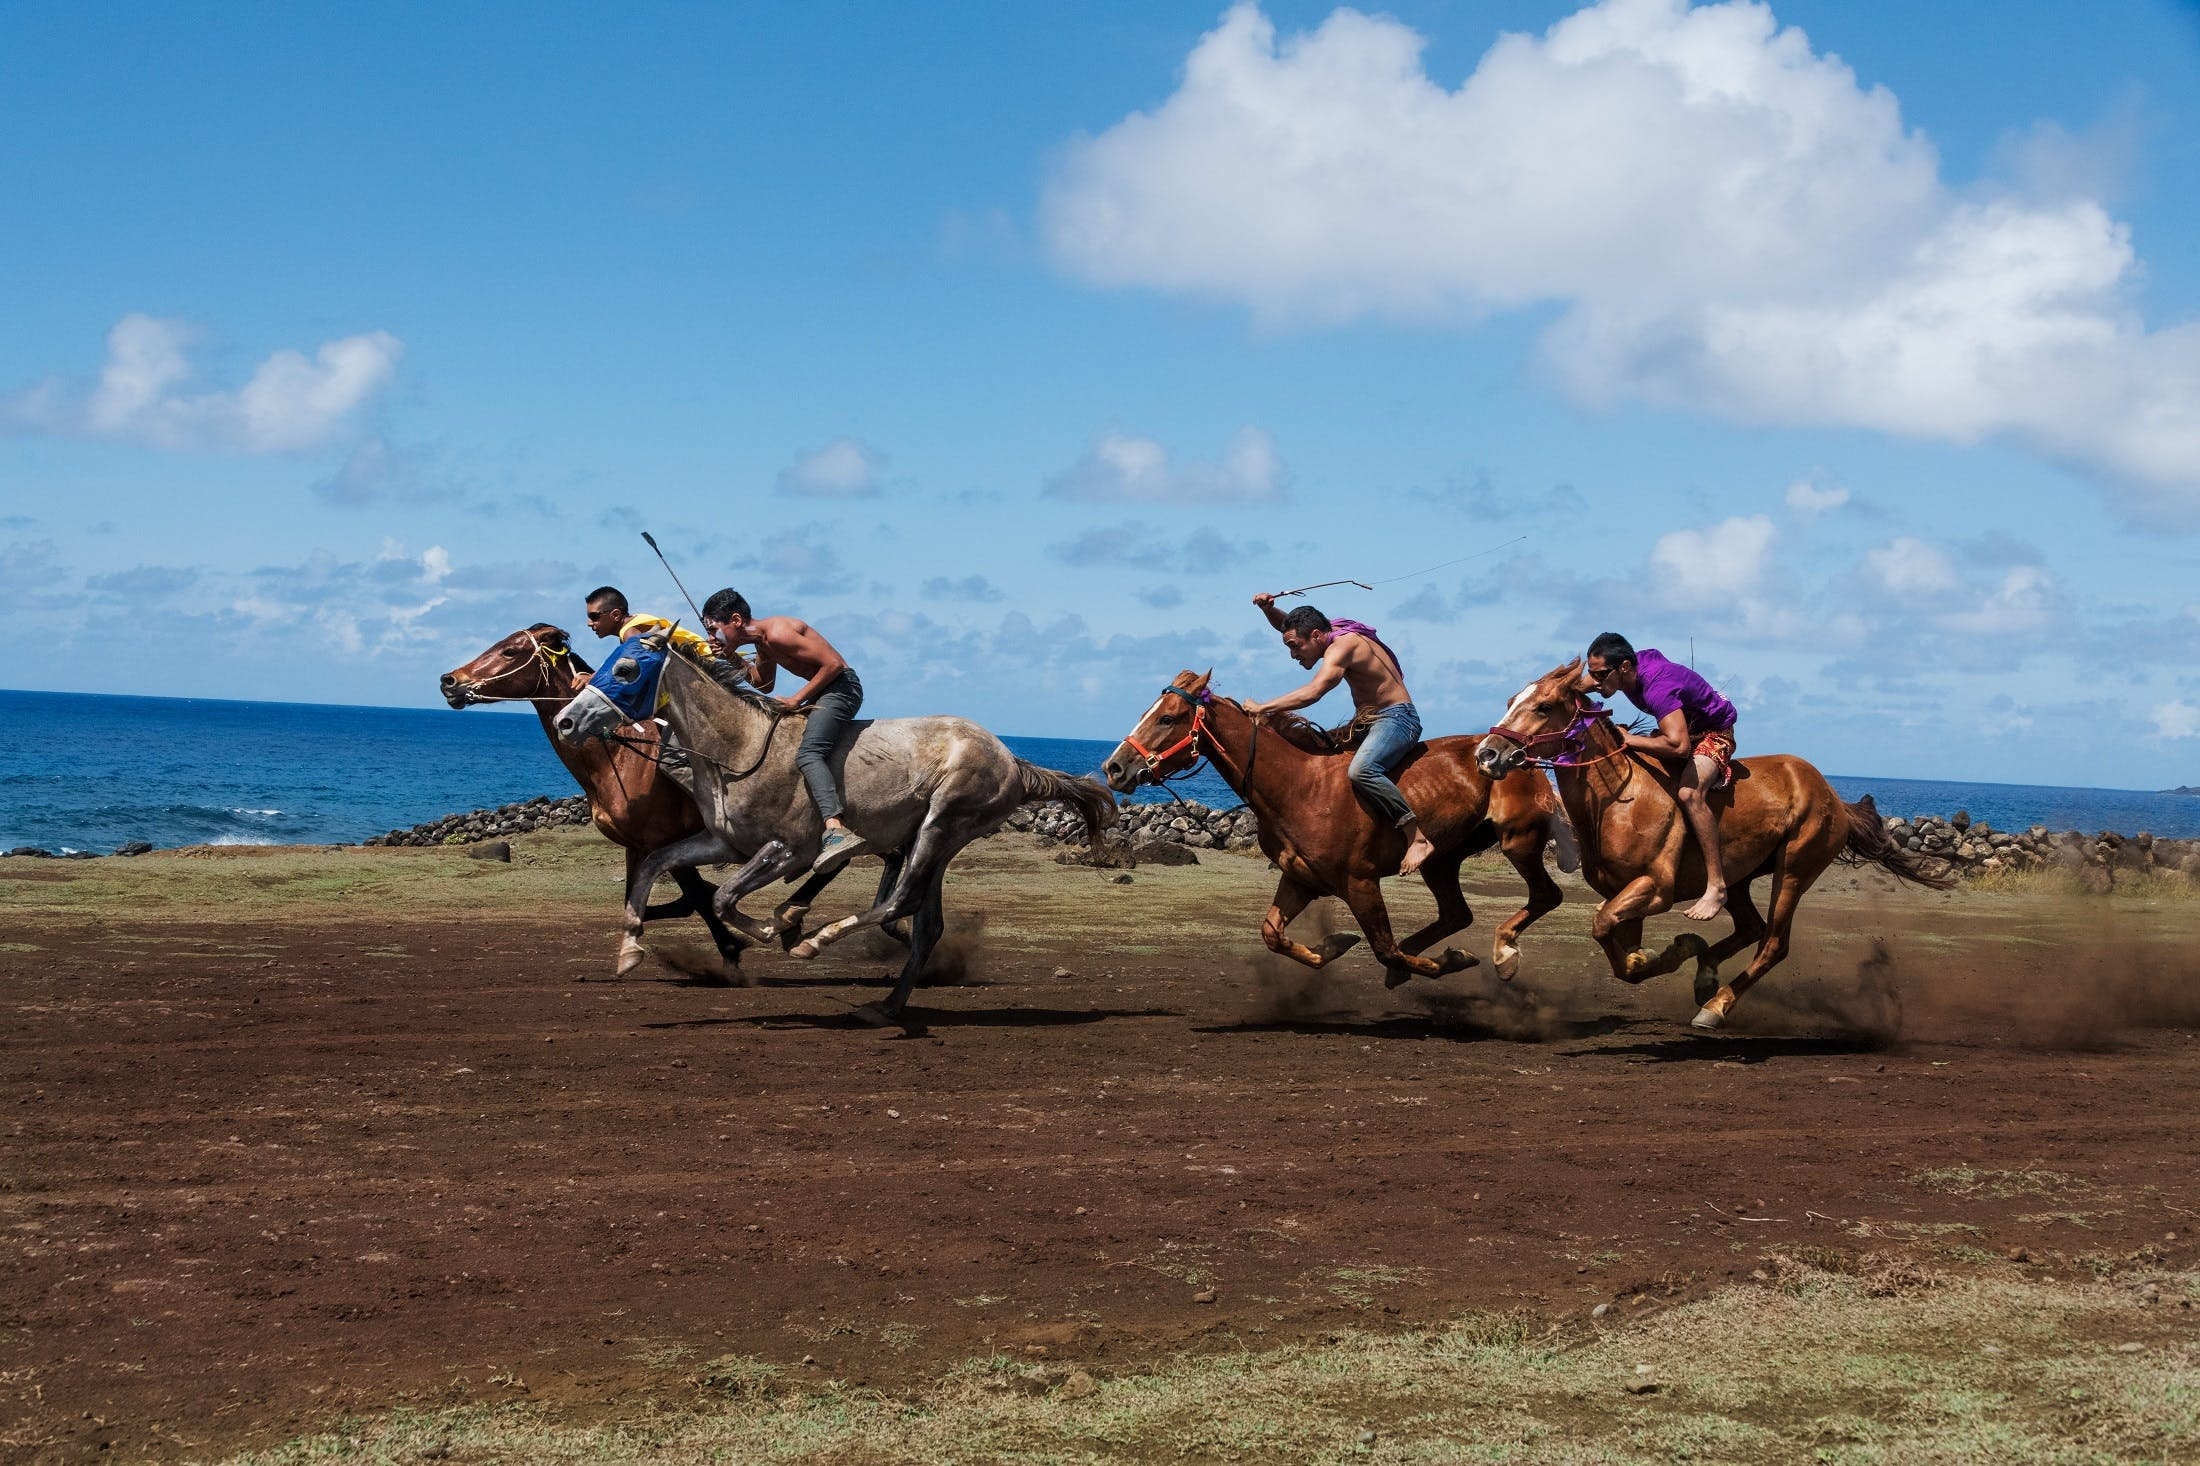 Easter Island by Steve McCurry